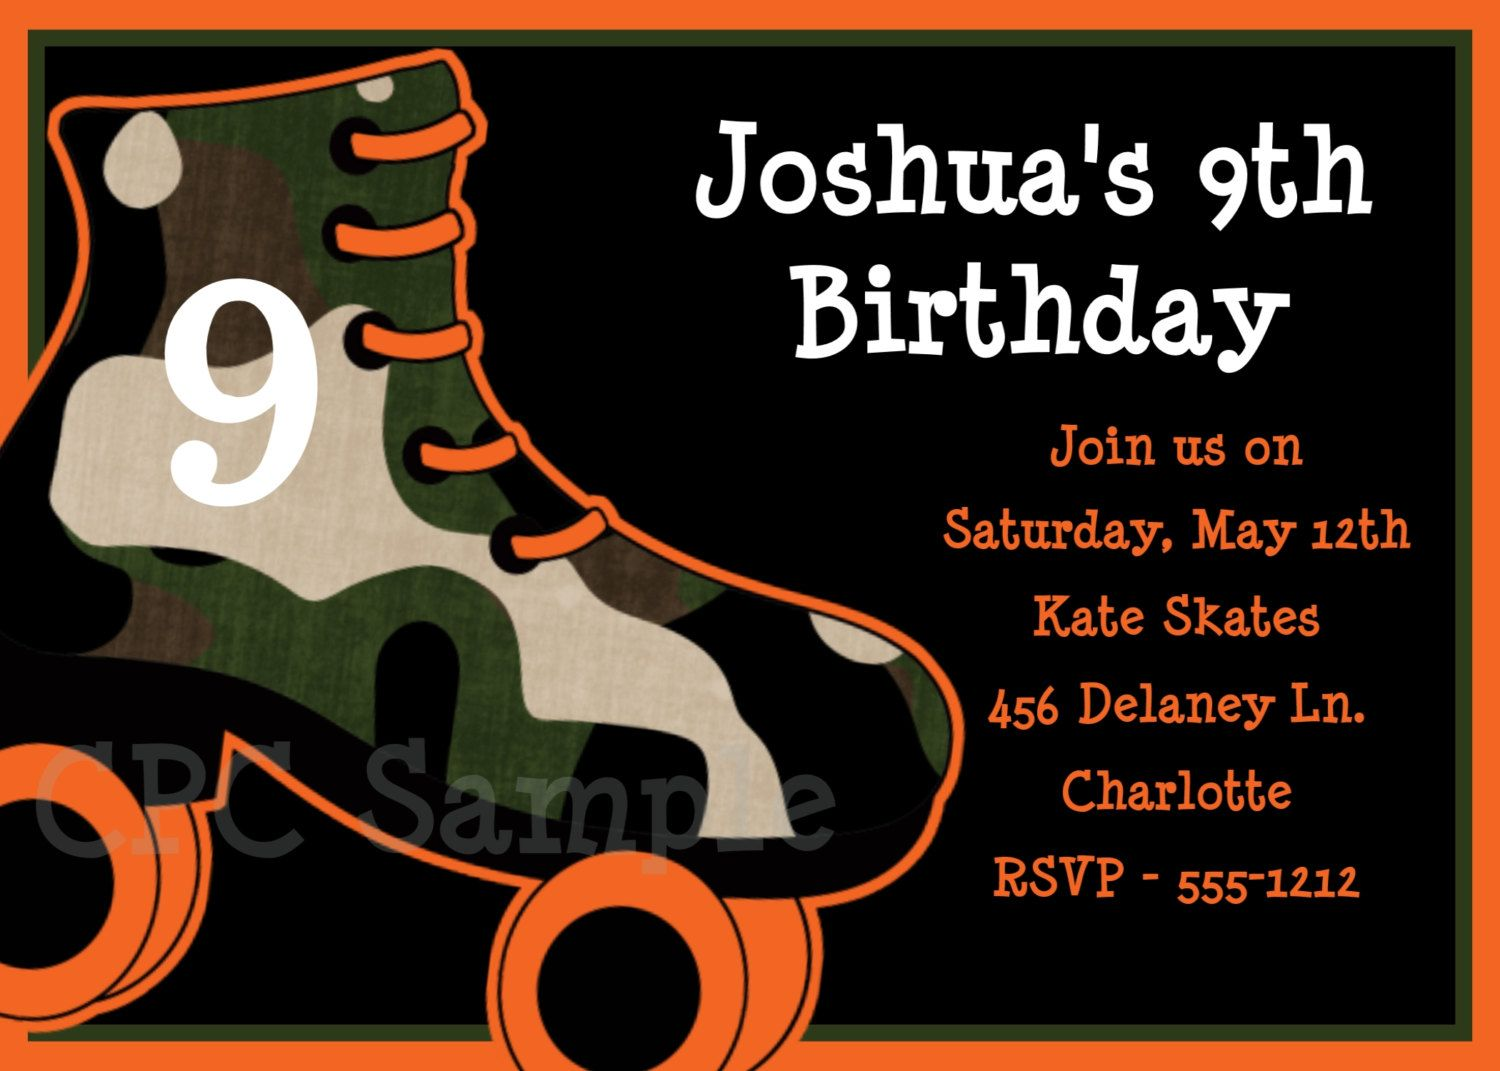 Boys rollerskating birthday party invitations printable or printed boys rollerskating birthday invitation boys roller skating birthday party invitation printable 1500 via etsy filmwisefo